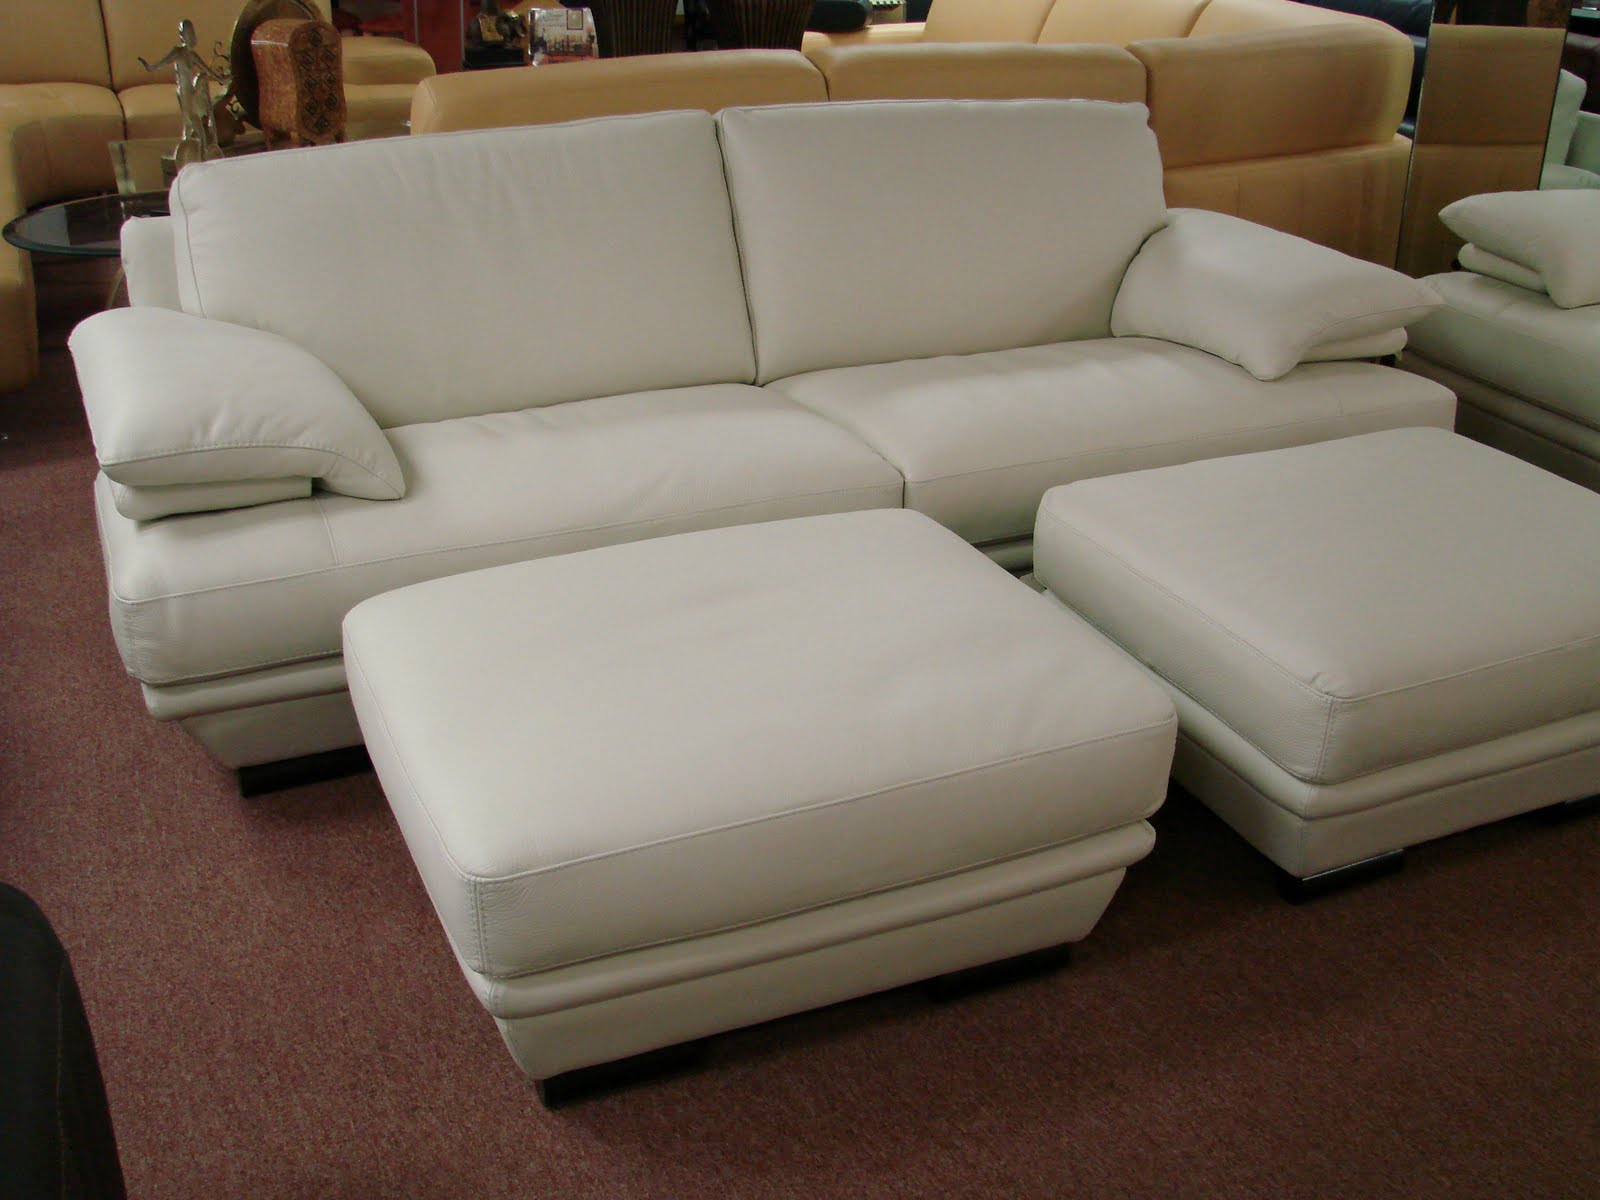 Recliner Sofa Sets In Dubai Sell Natuzzi